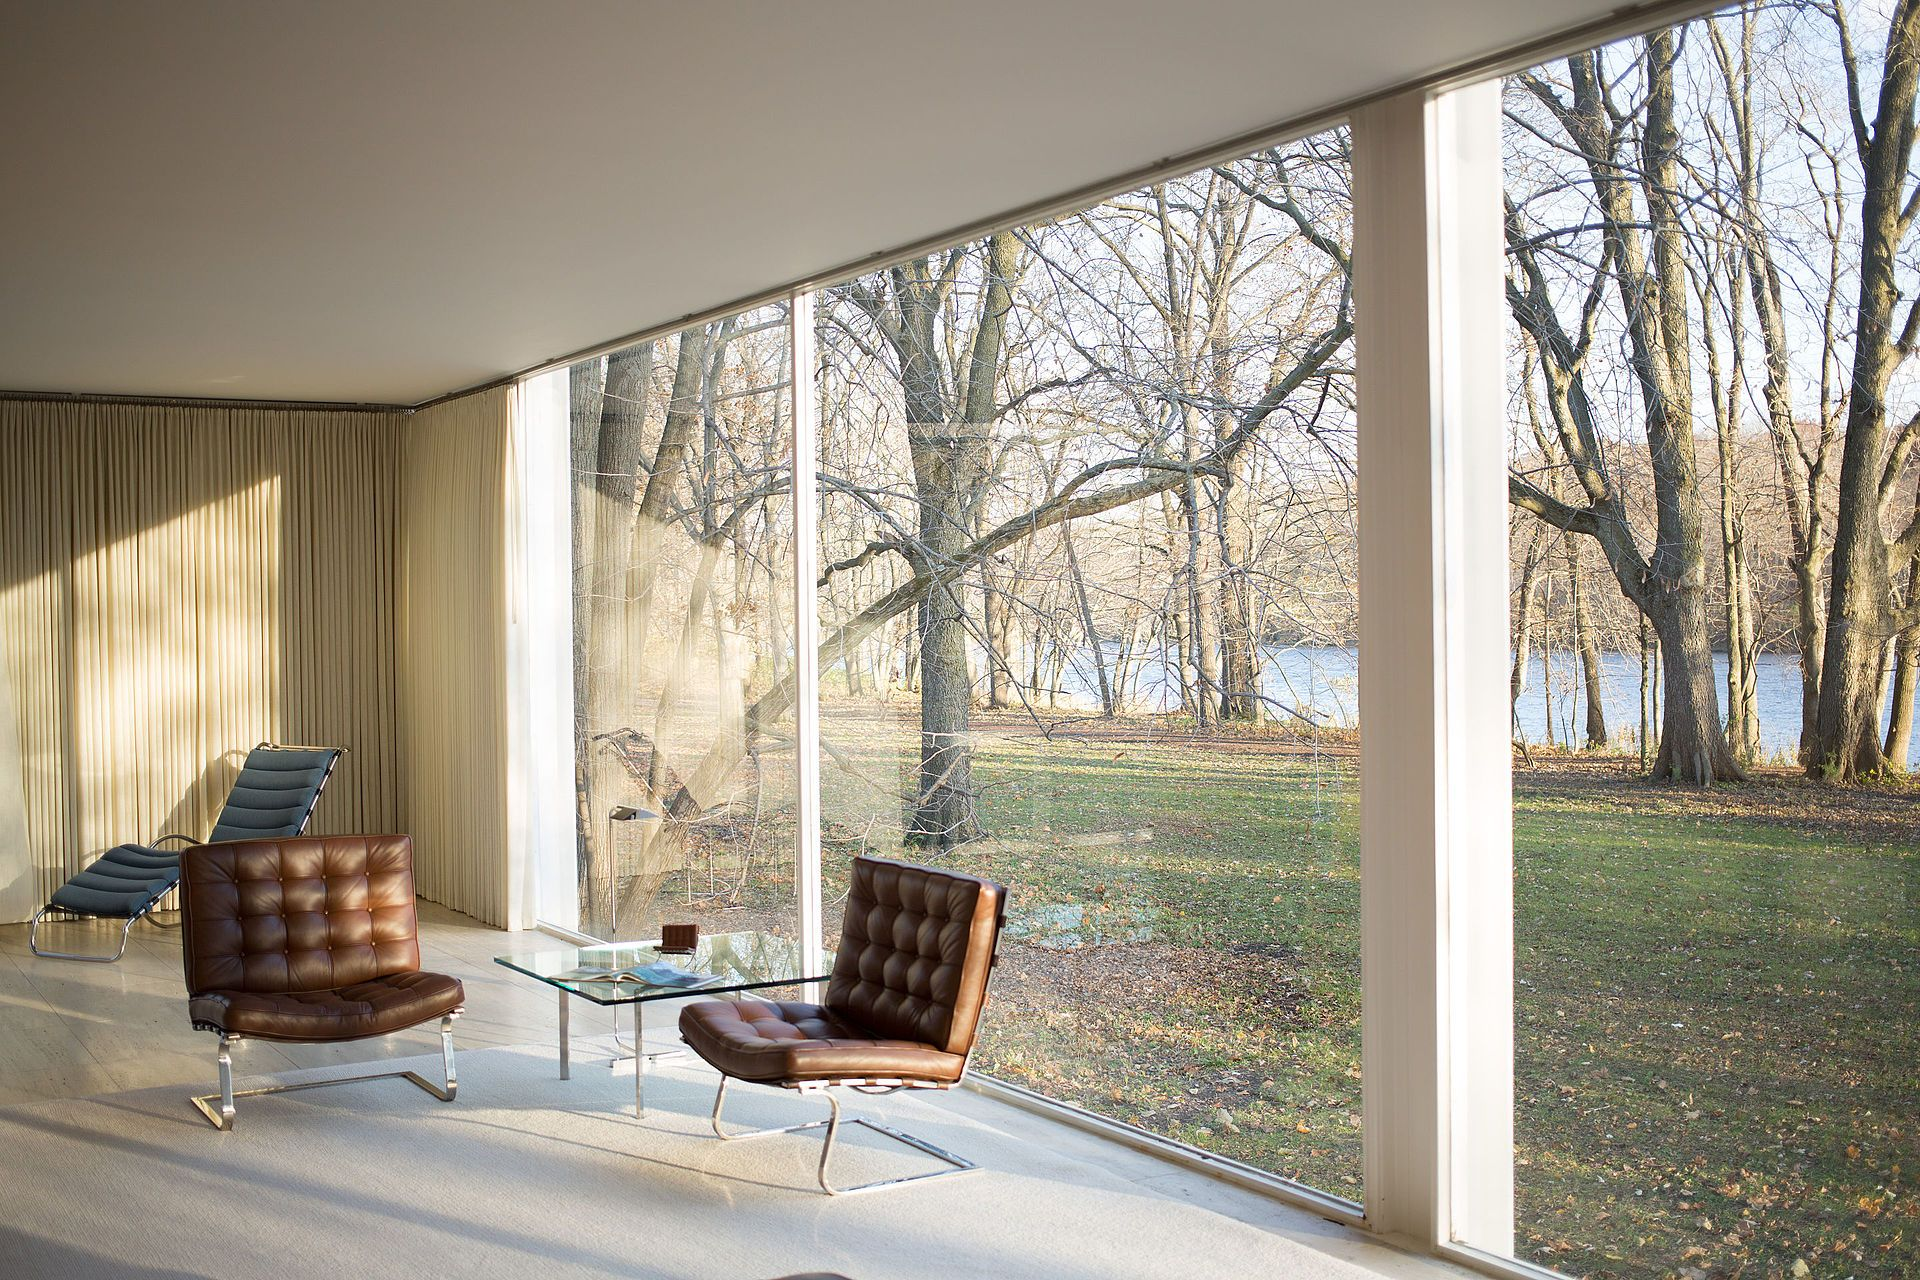 Farnsworth house by mies van der rohe interior farnsworth house wikipedia the free encyclopedia